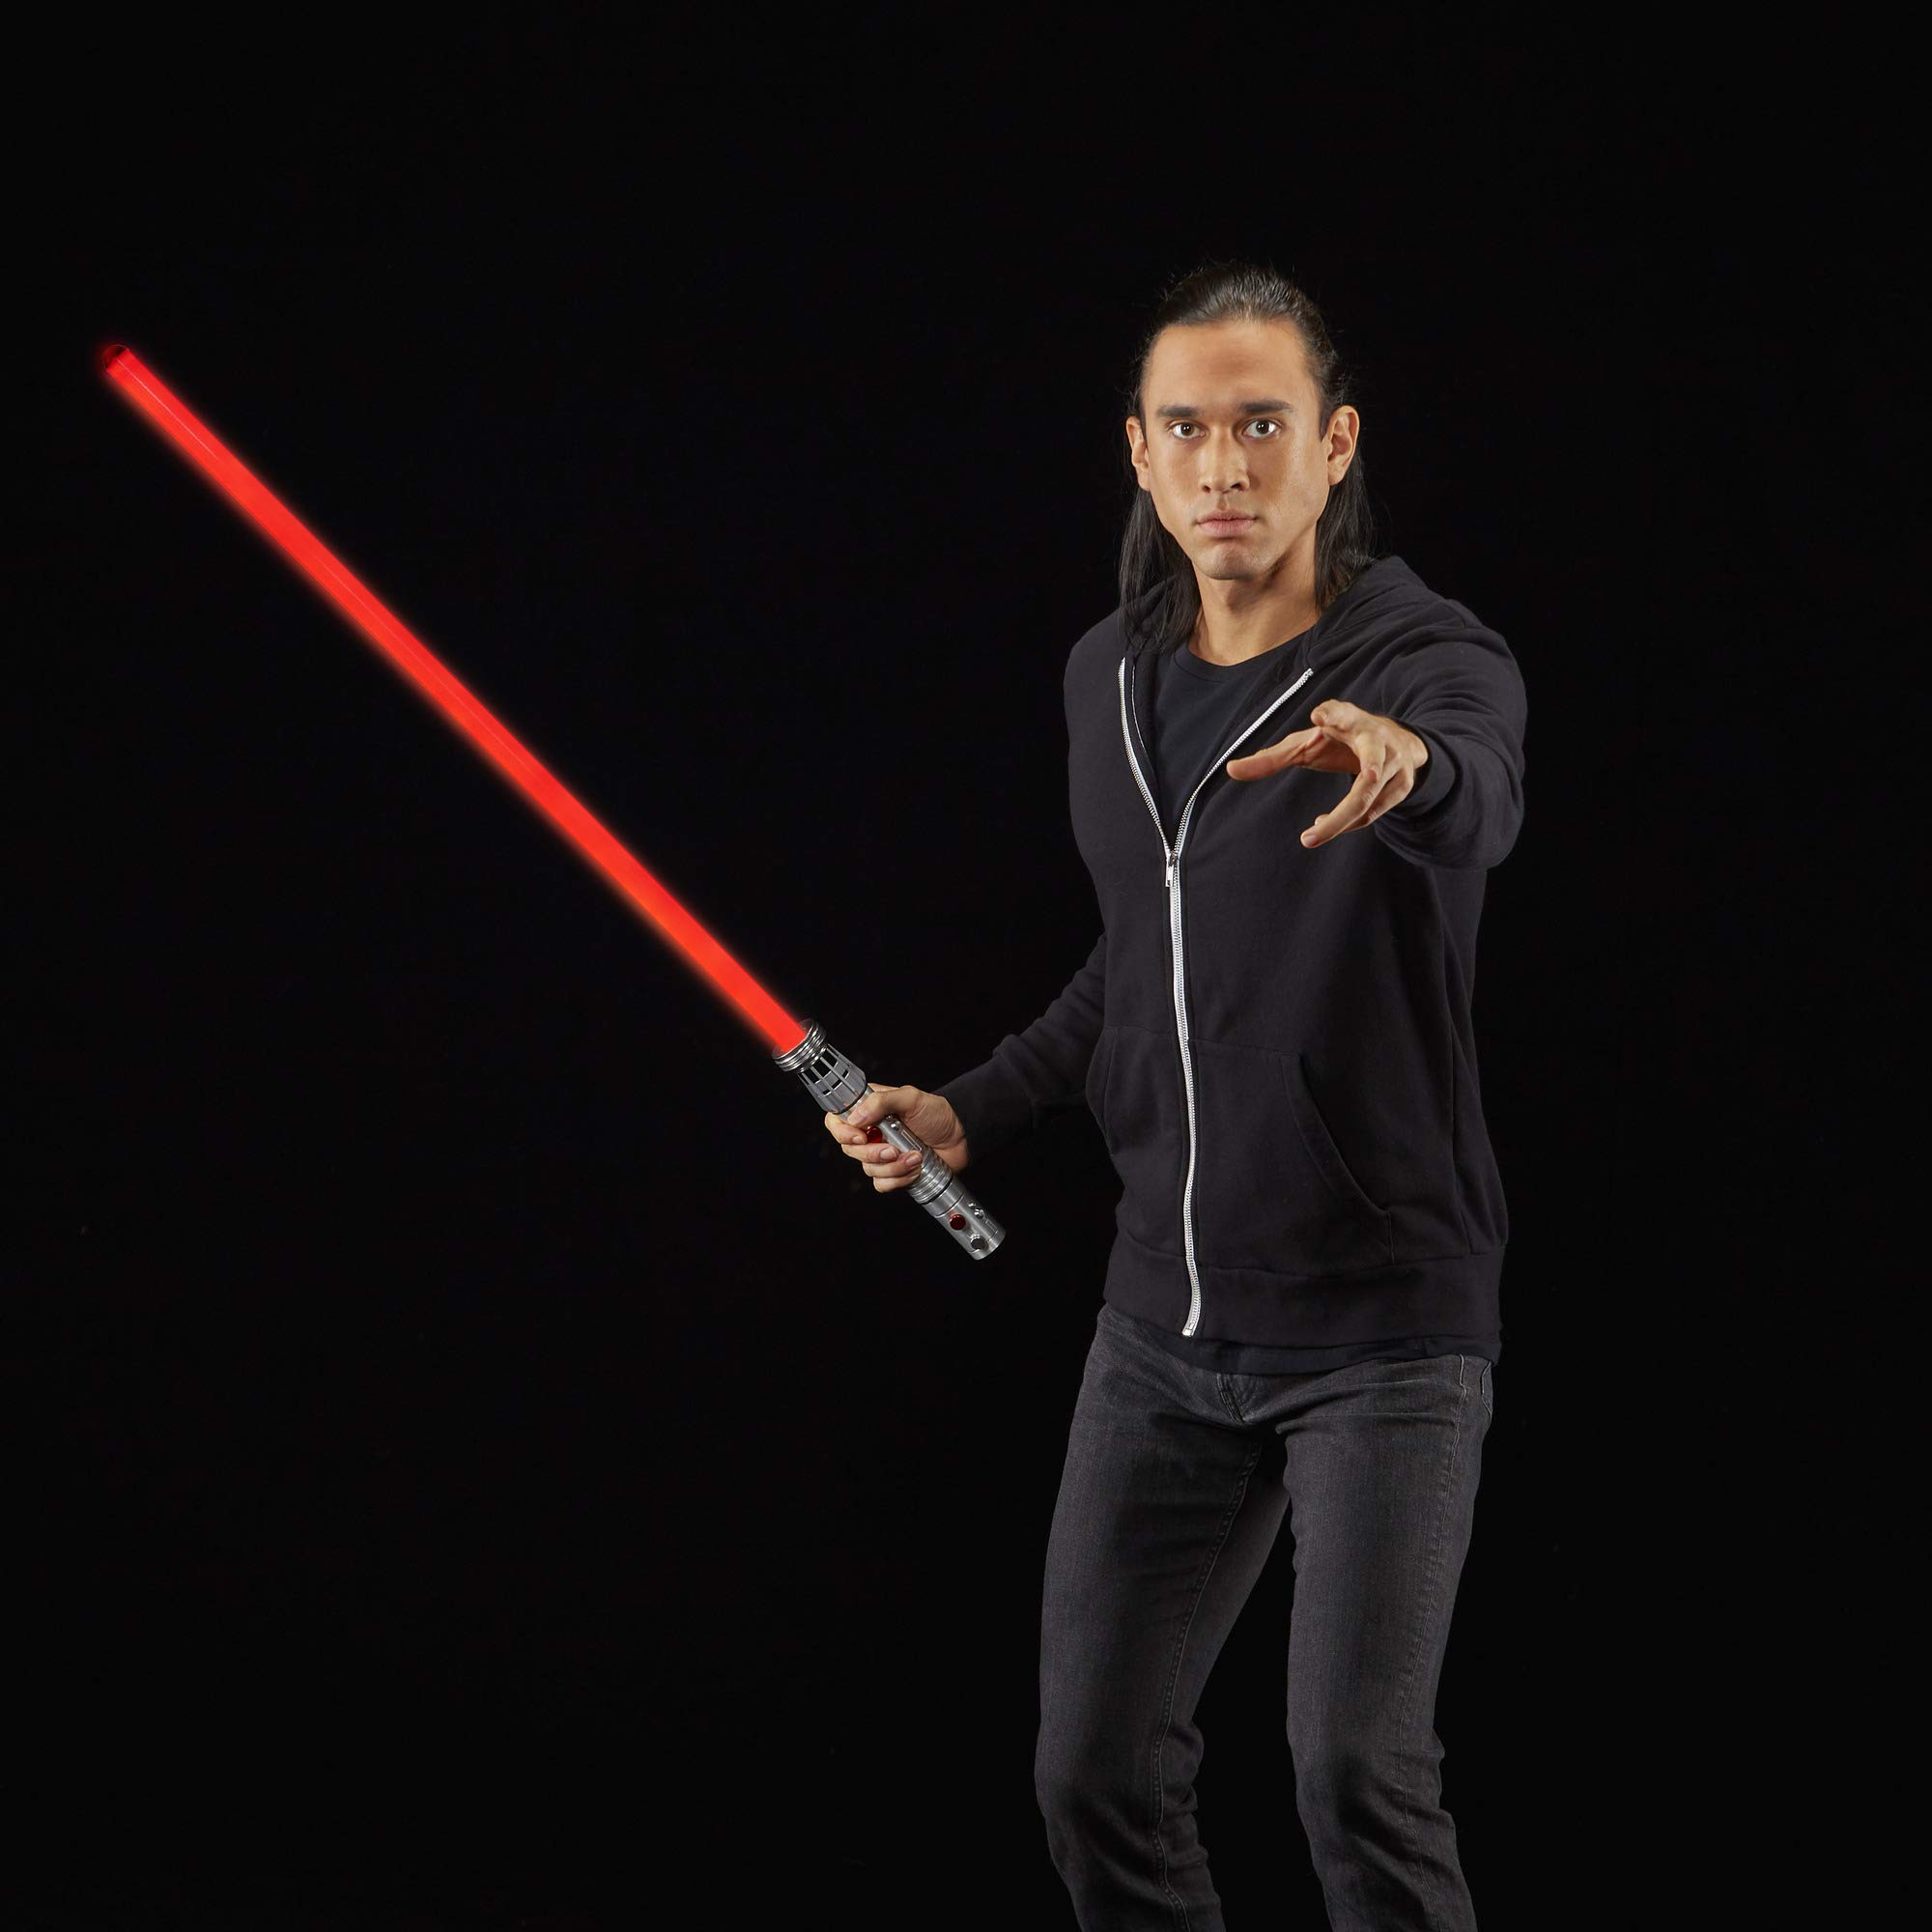 Star Wars The Black Series Darth Maul Ep1 Force FX Lightsaber Toy by Star Wars (Image #4)